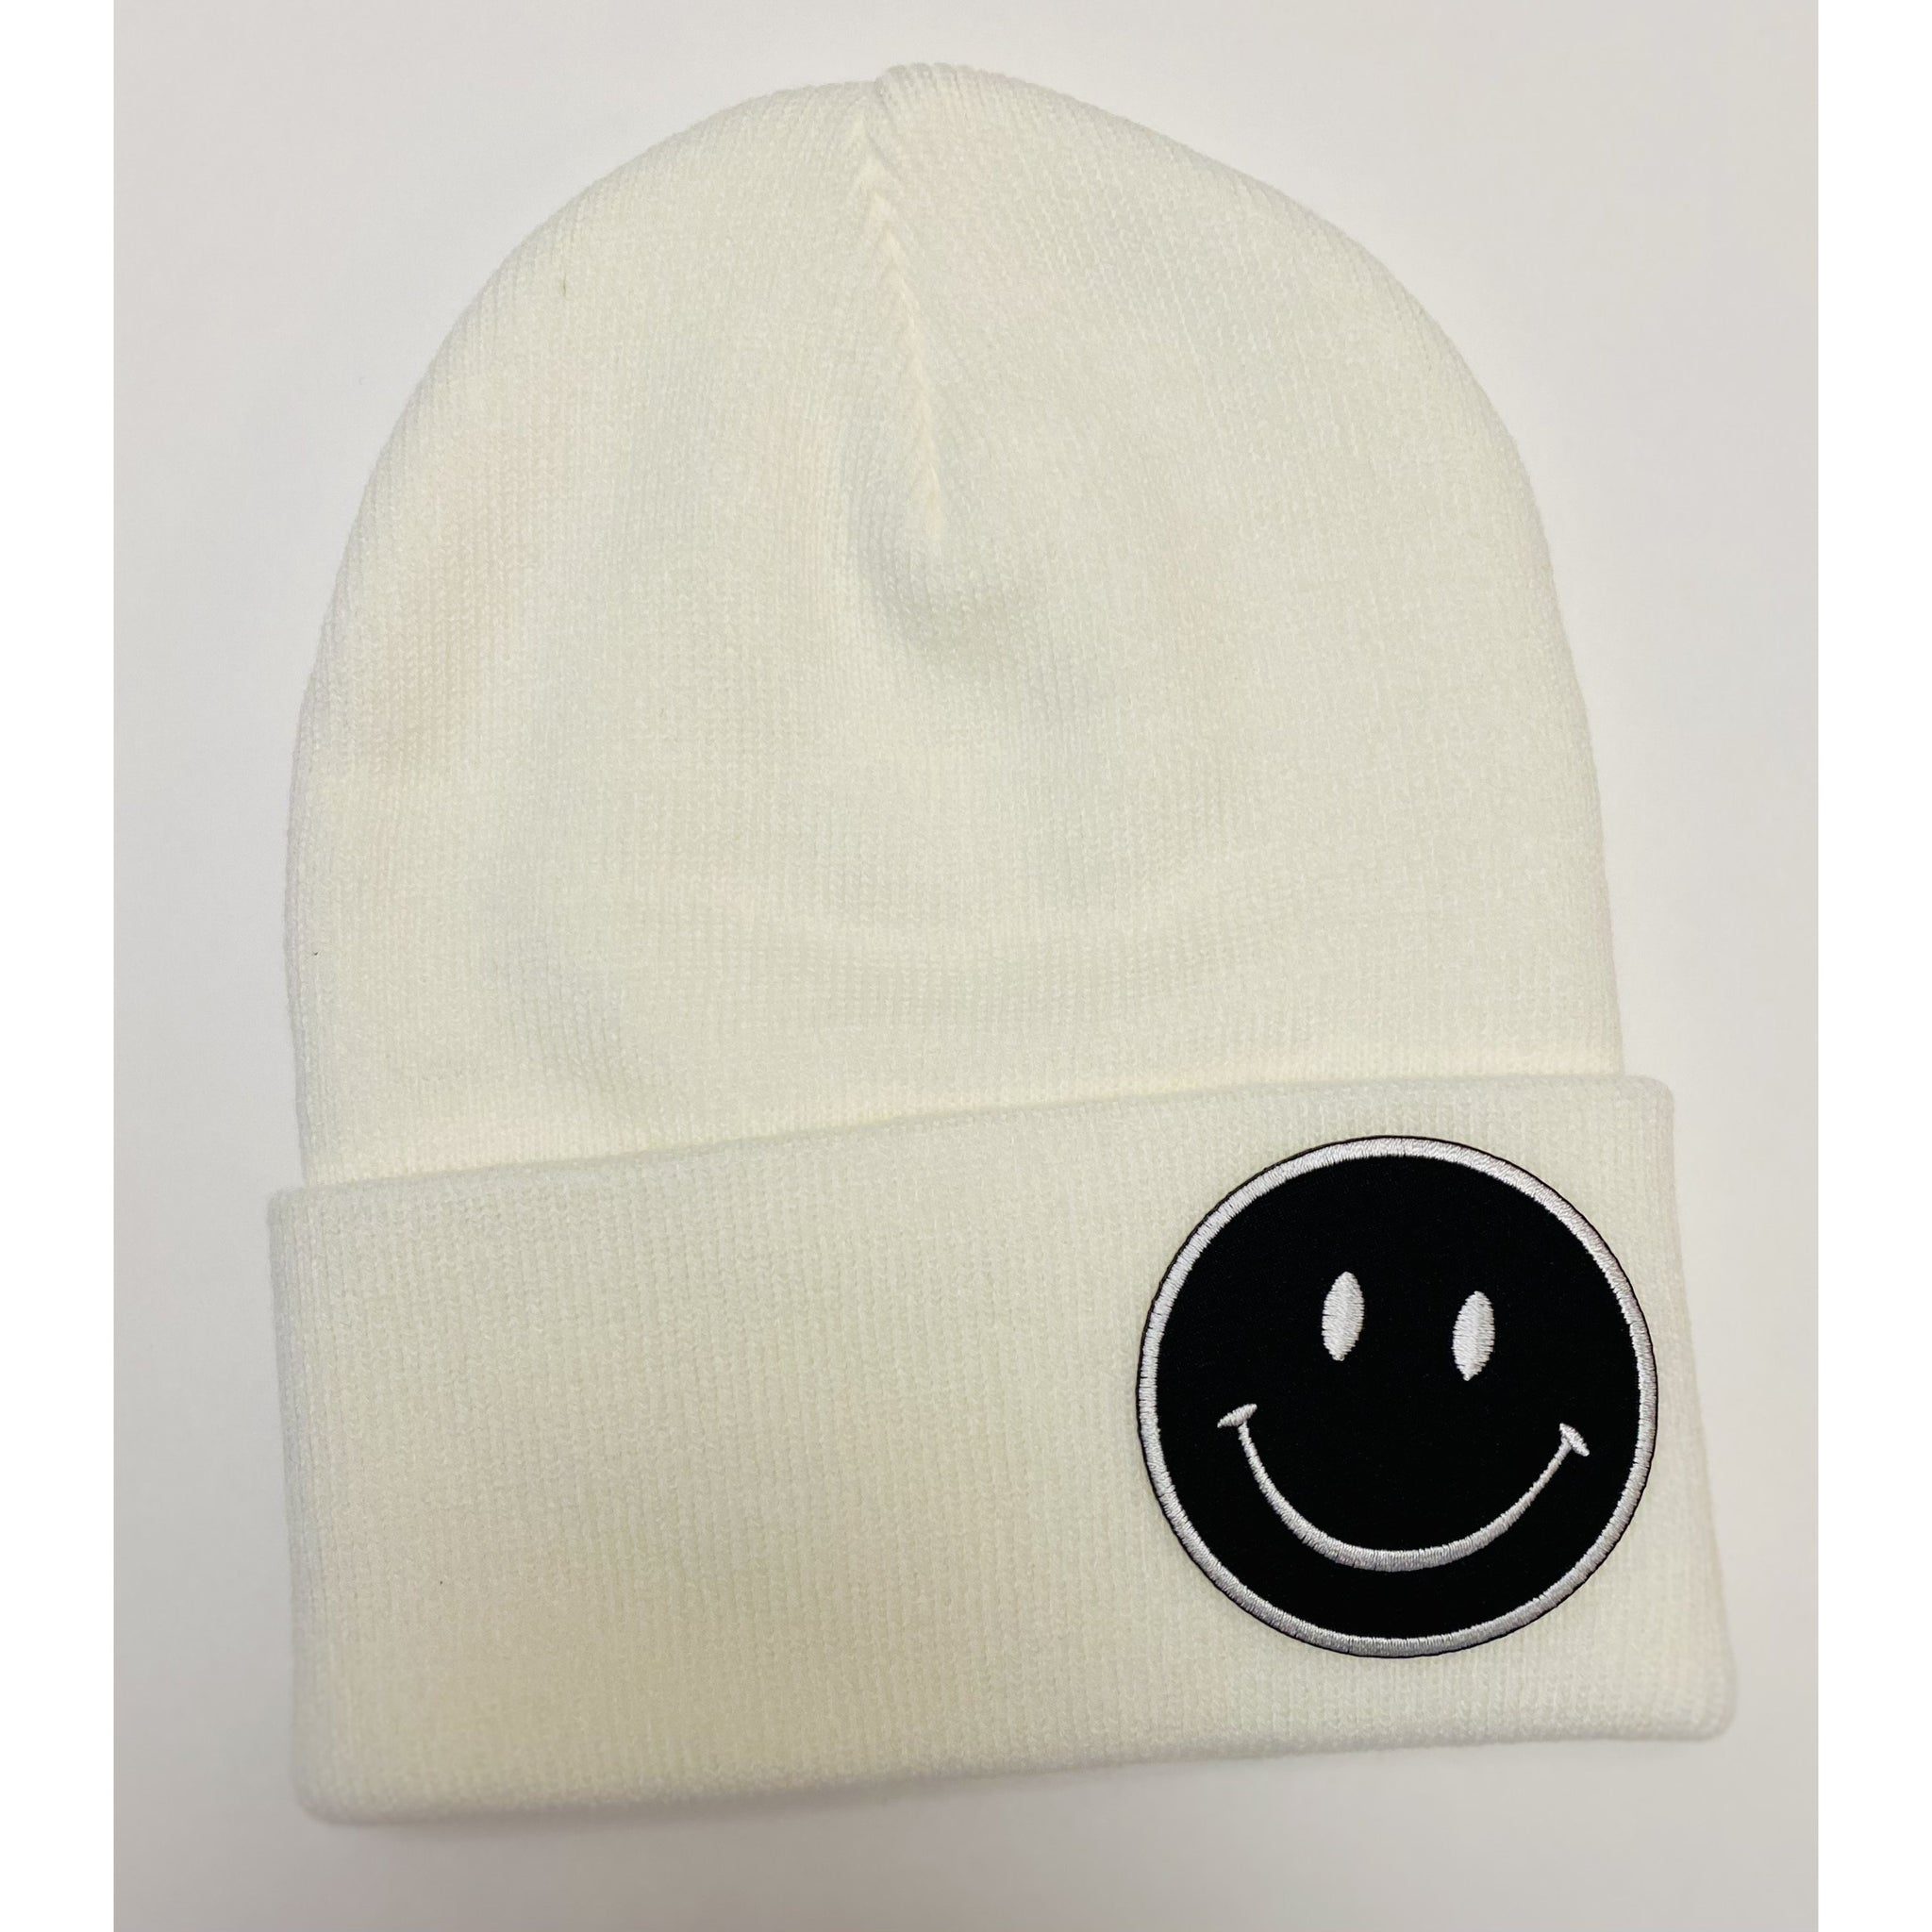 White Retro Smiley Face Beanie